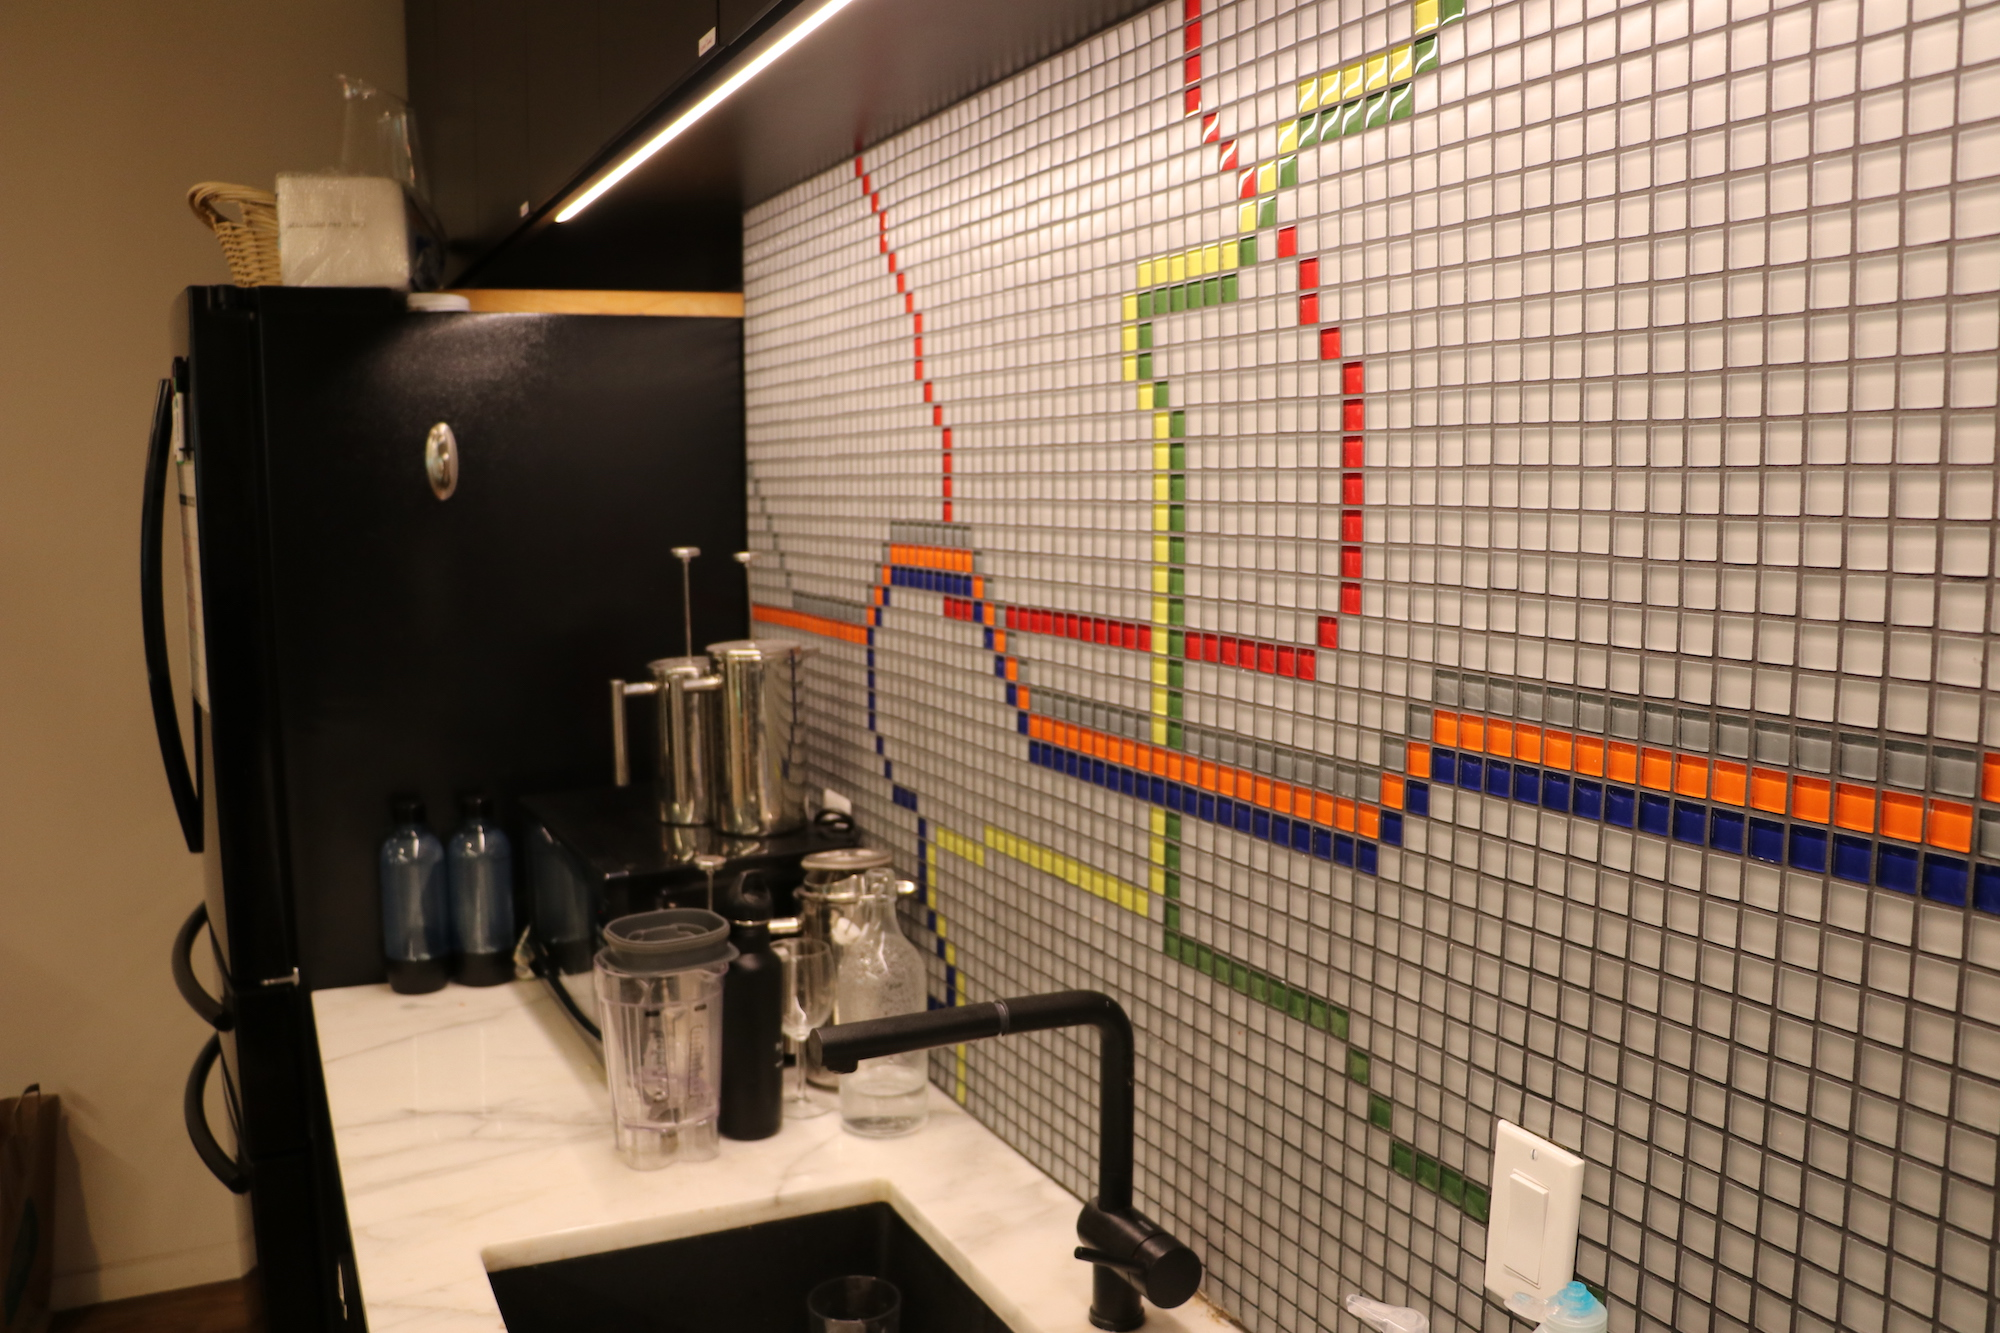 A tile map of the Washington, D.C. Metro system in the kitchen of Quorum's office.